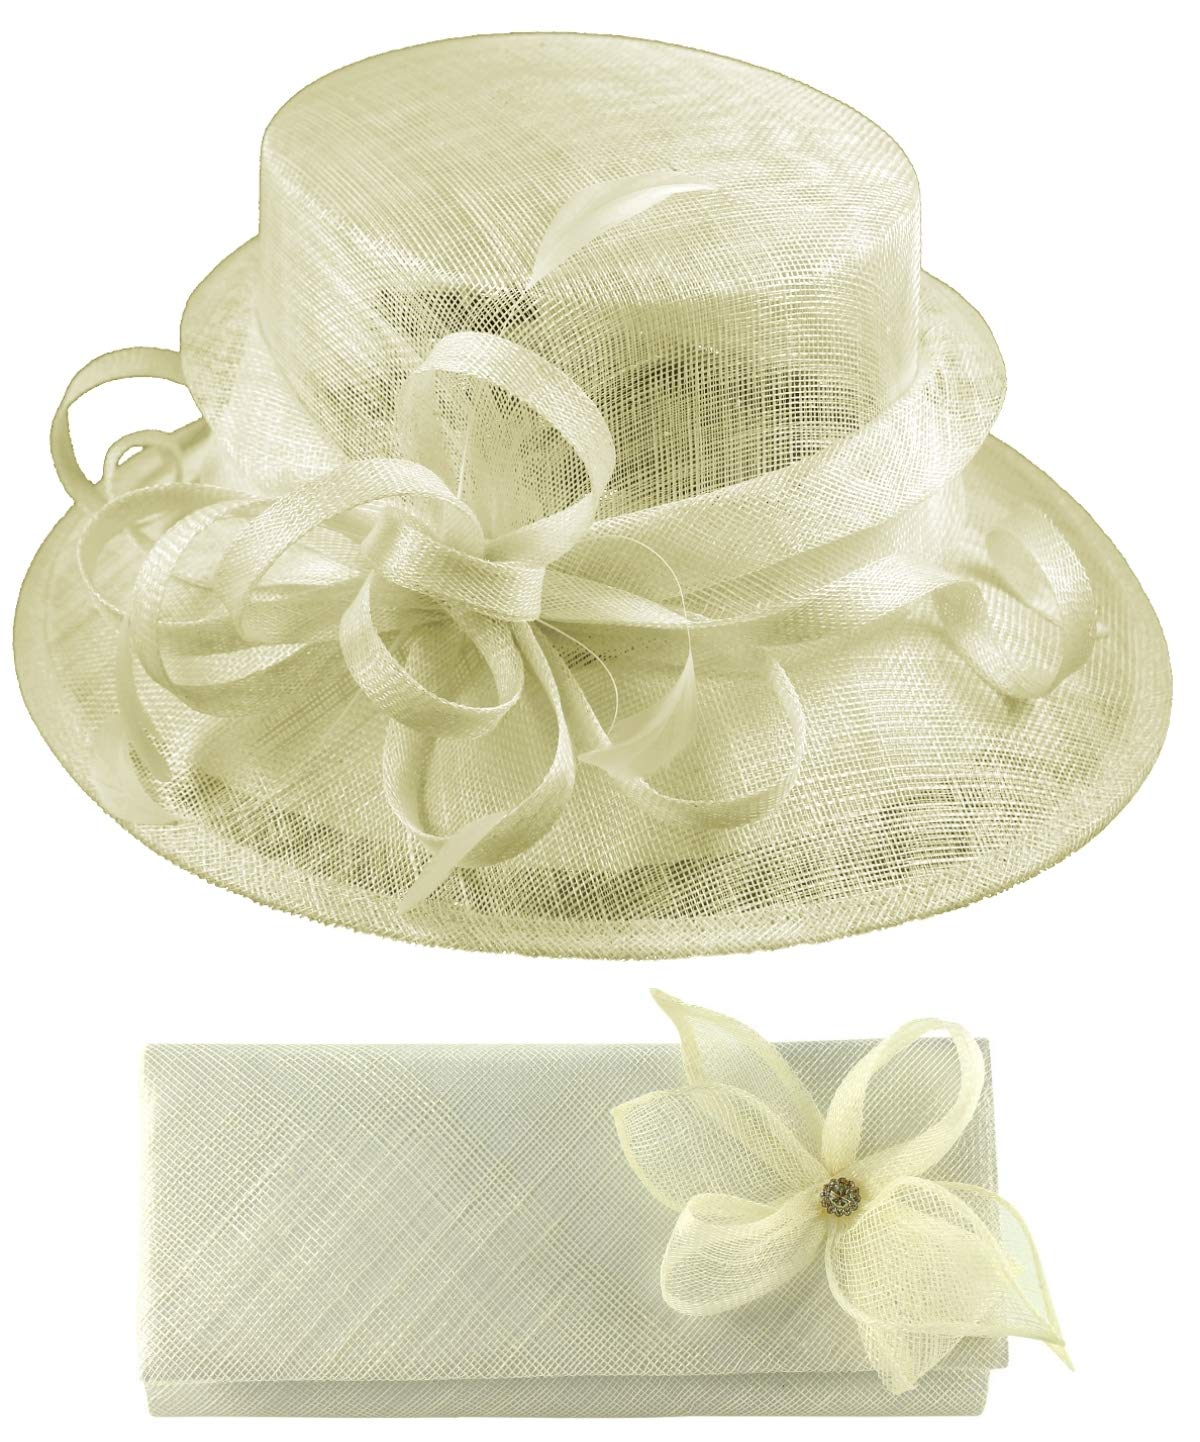 Elegance Collection Sinamay Wedding Hat Bundle with Matching Sinamay Bag (2 Items) in Ivory, Size: Medium (57cm)